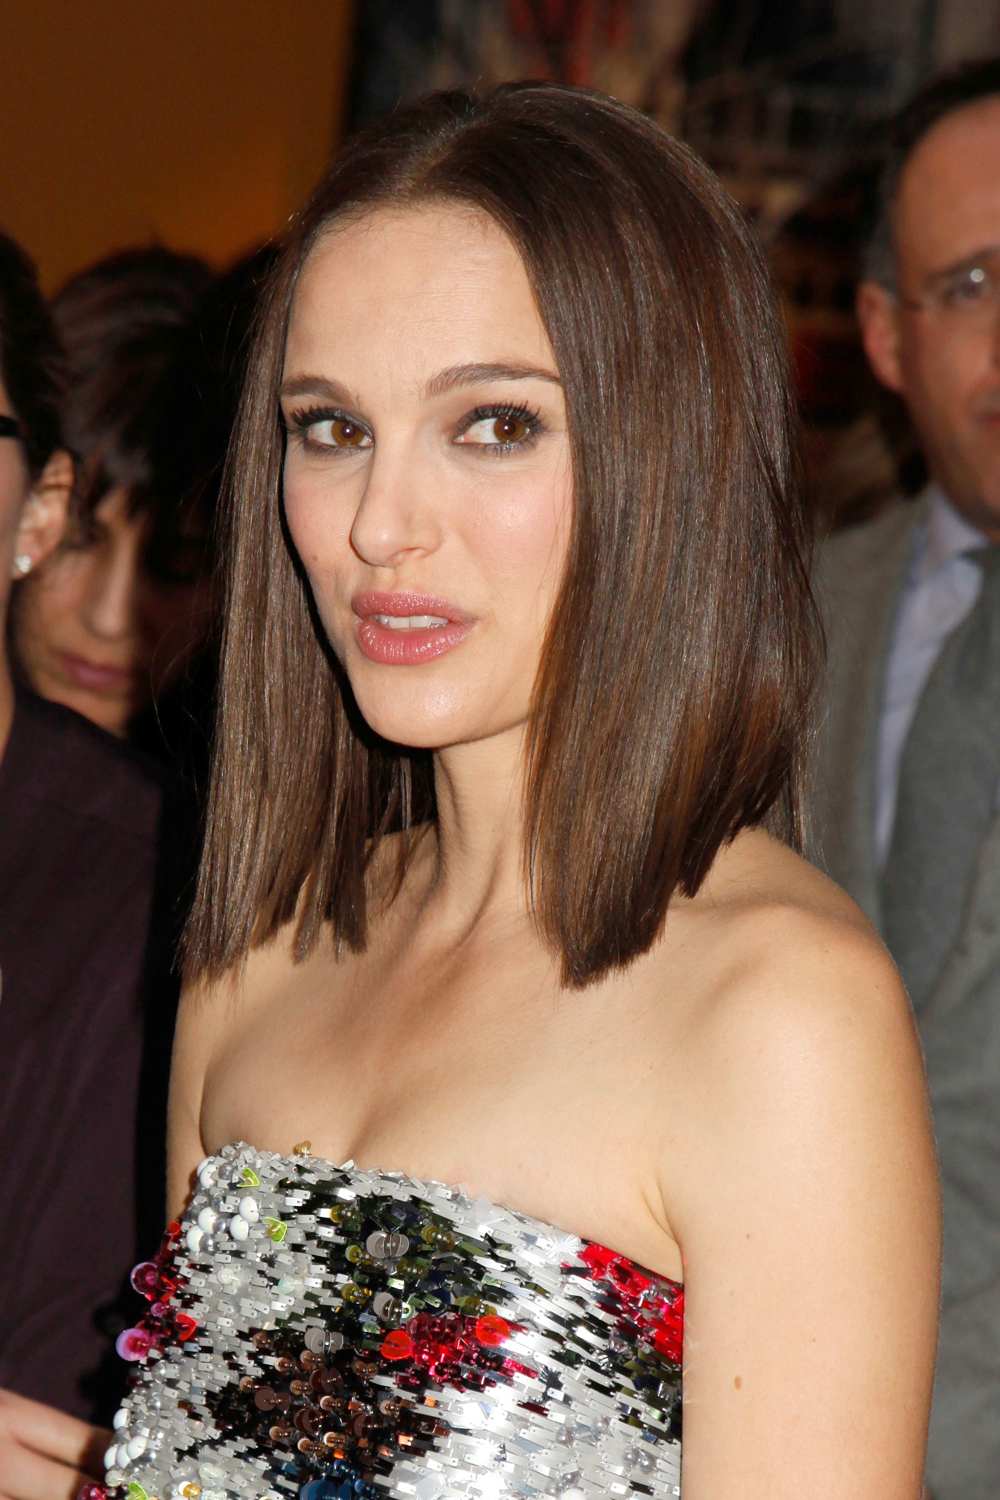 10 Lessons Ive Learned From Natalie Portman Hairstyles Natalie